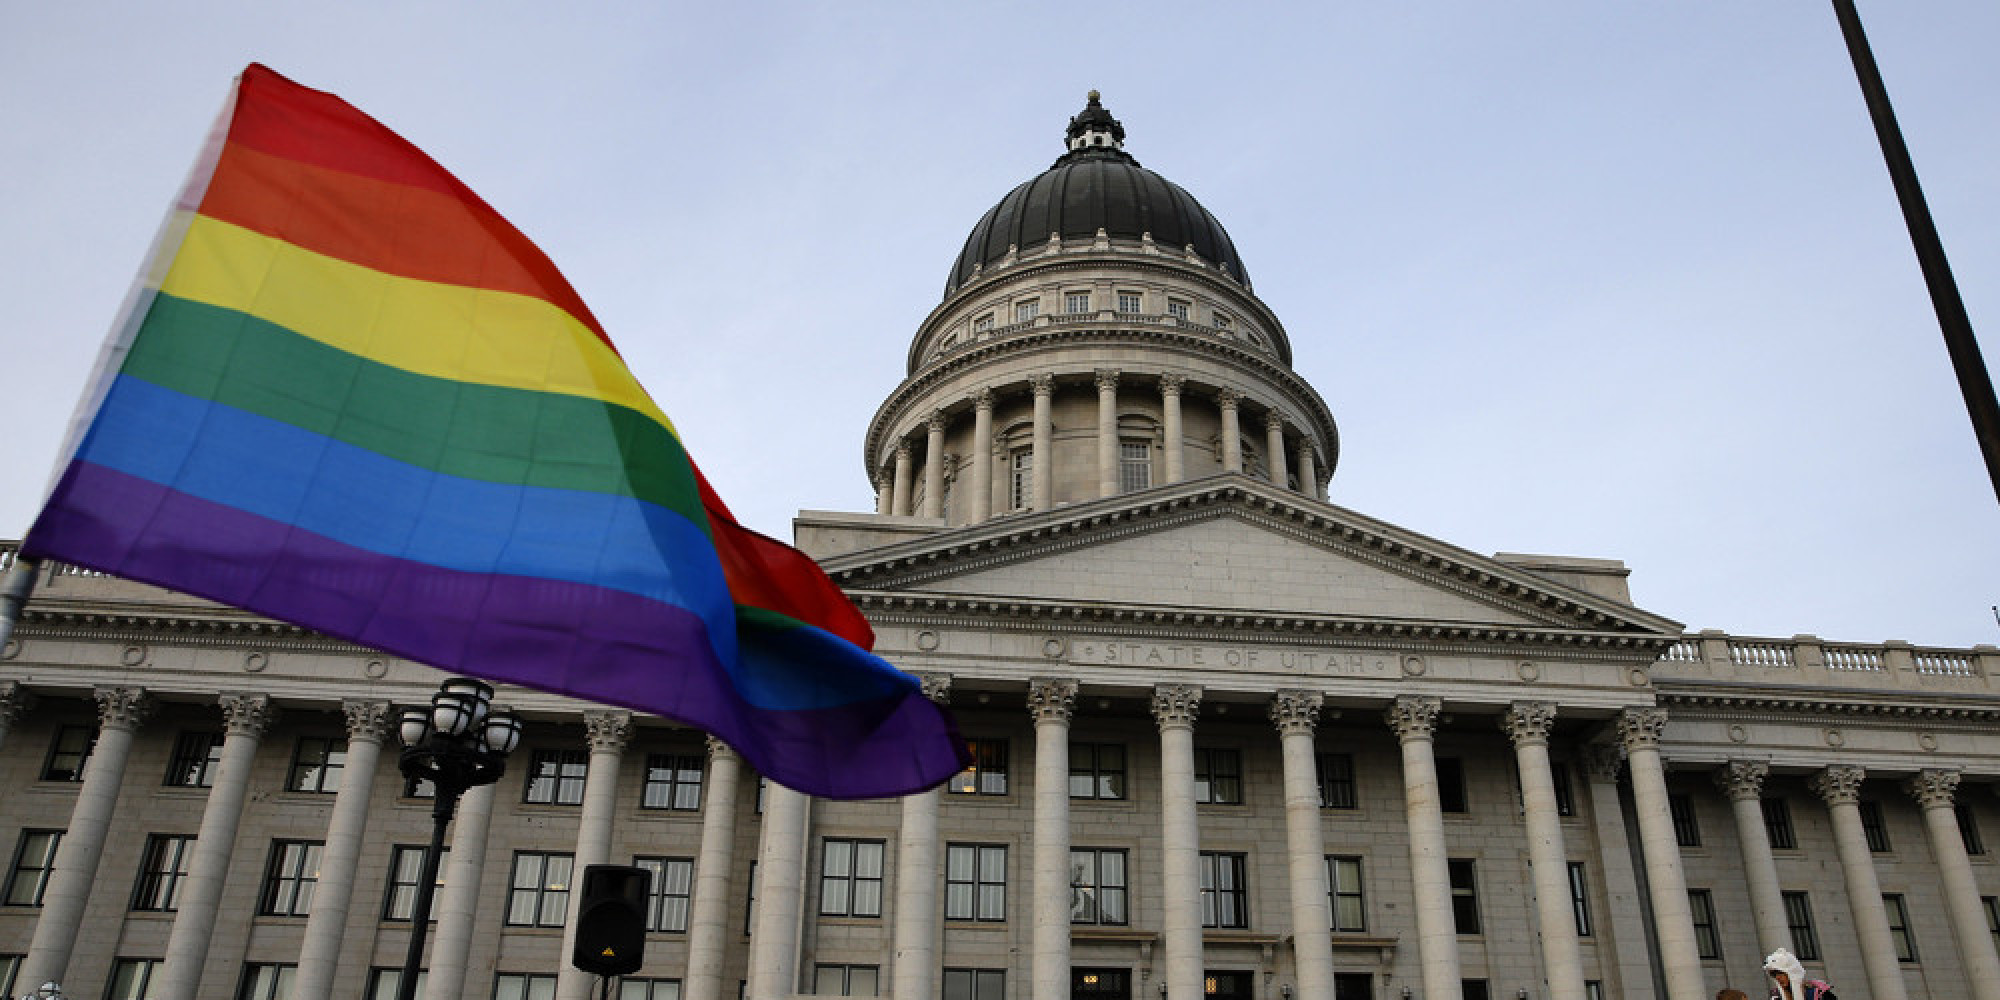 Utah Marriage Equality Plaintiffs Ask U.S. Supreme Court to Review Case